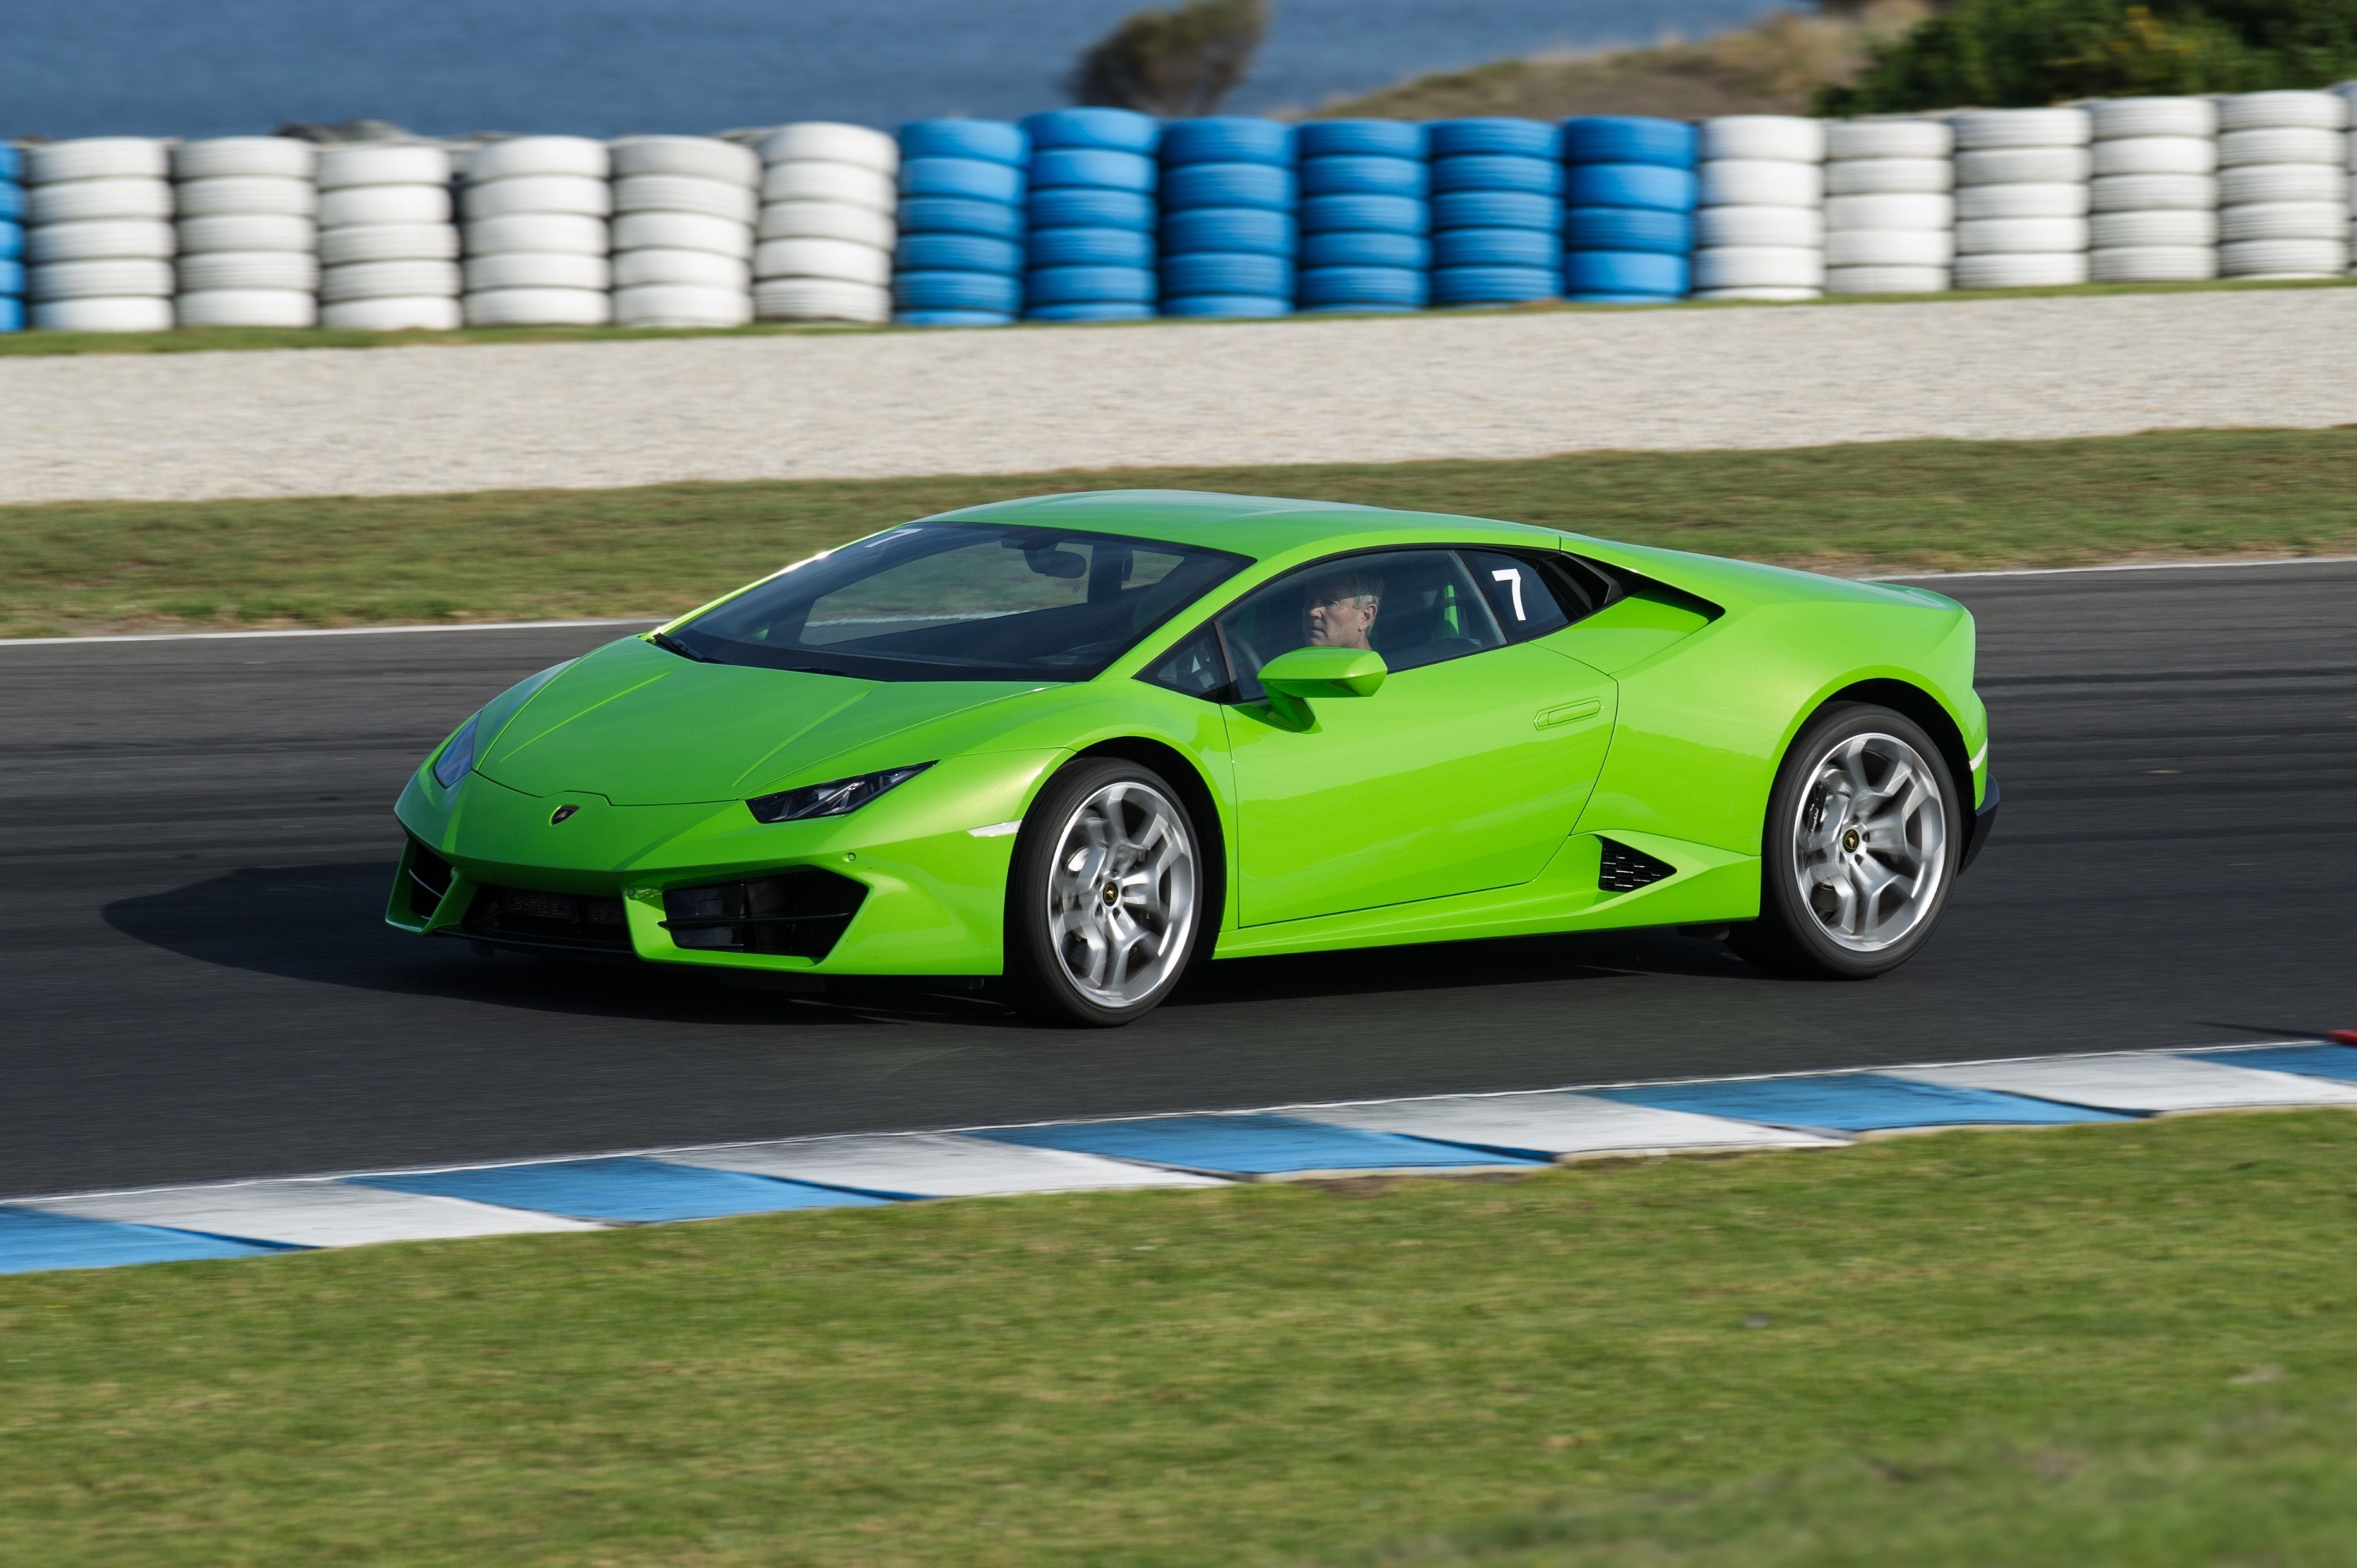 lamborghini looking to huracan lp580 2 for sales growth before urus launch photos 1 of 10. Black Bedroom Furniture Sets. Home Design Ideas